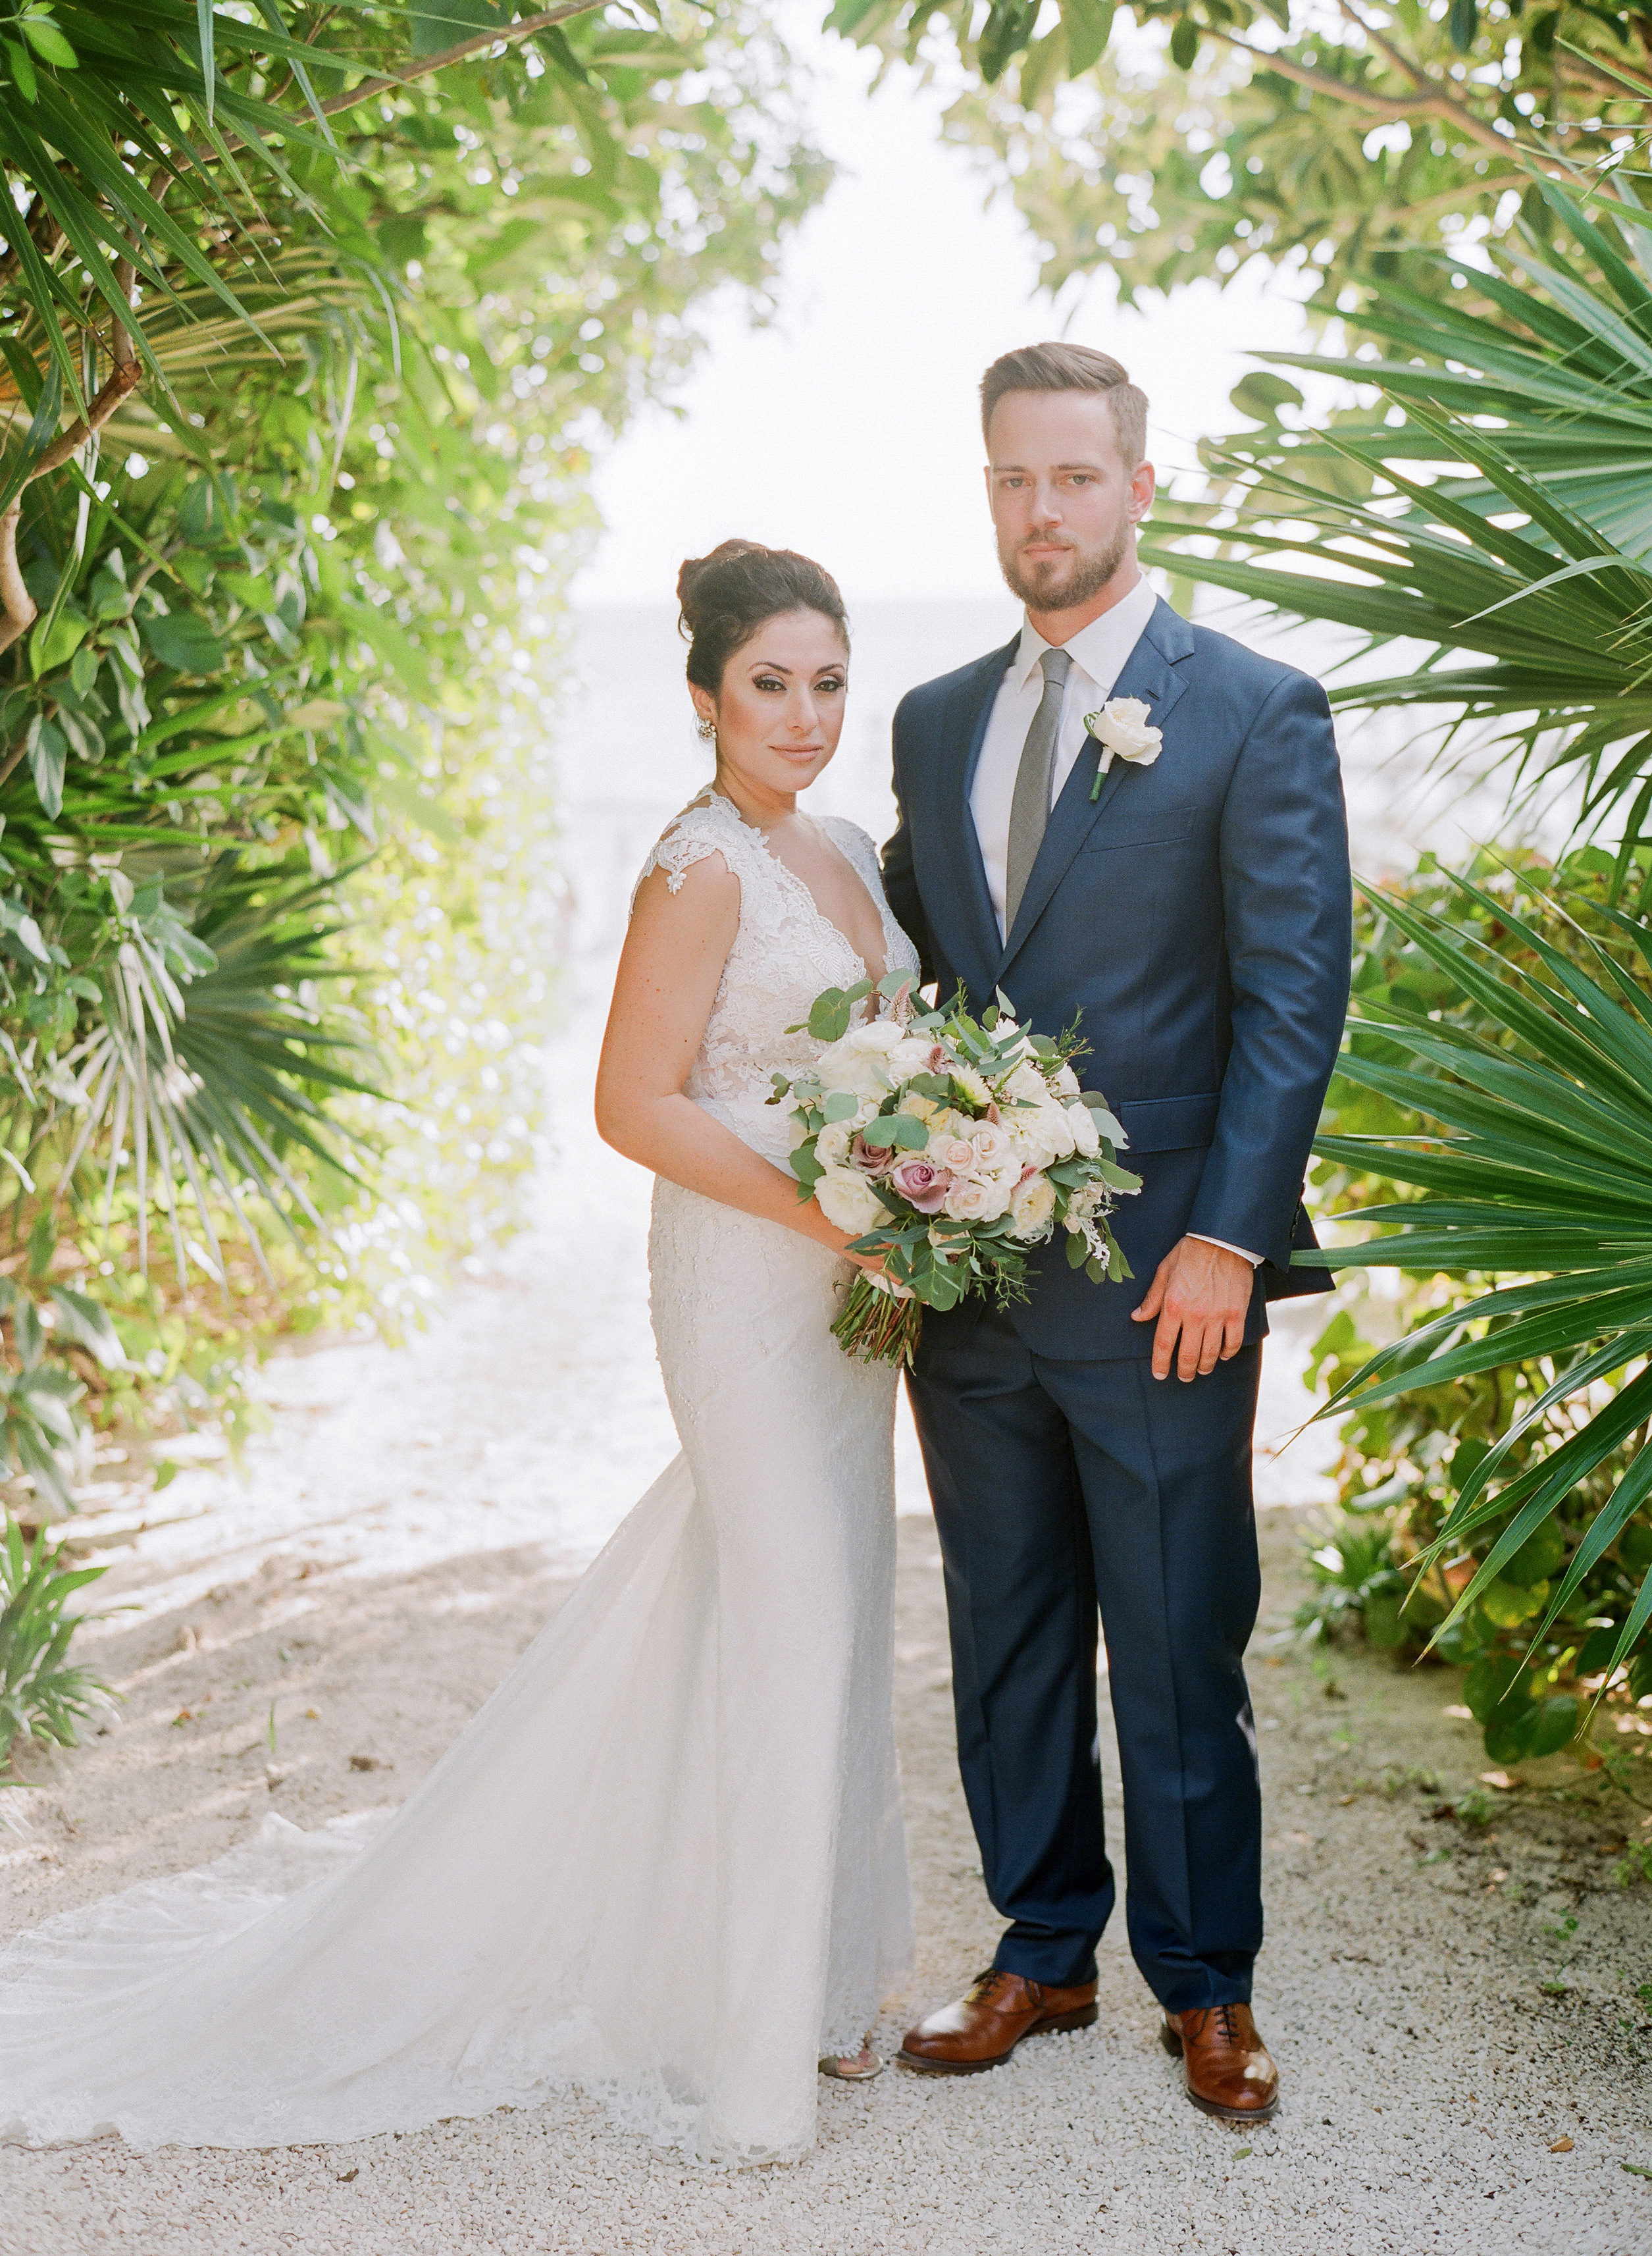 vicky james mexico wedding bride groom portrait